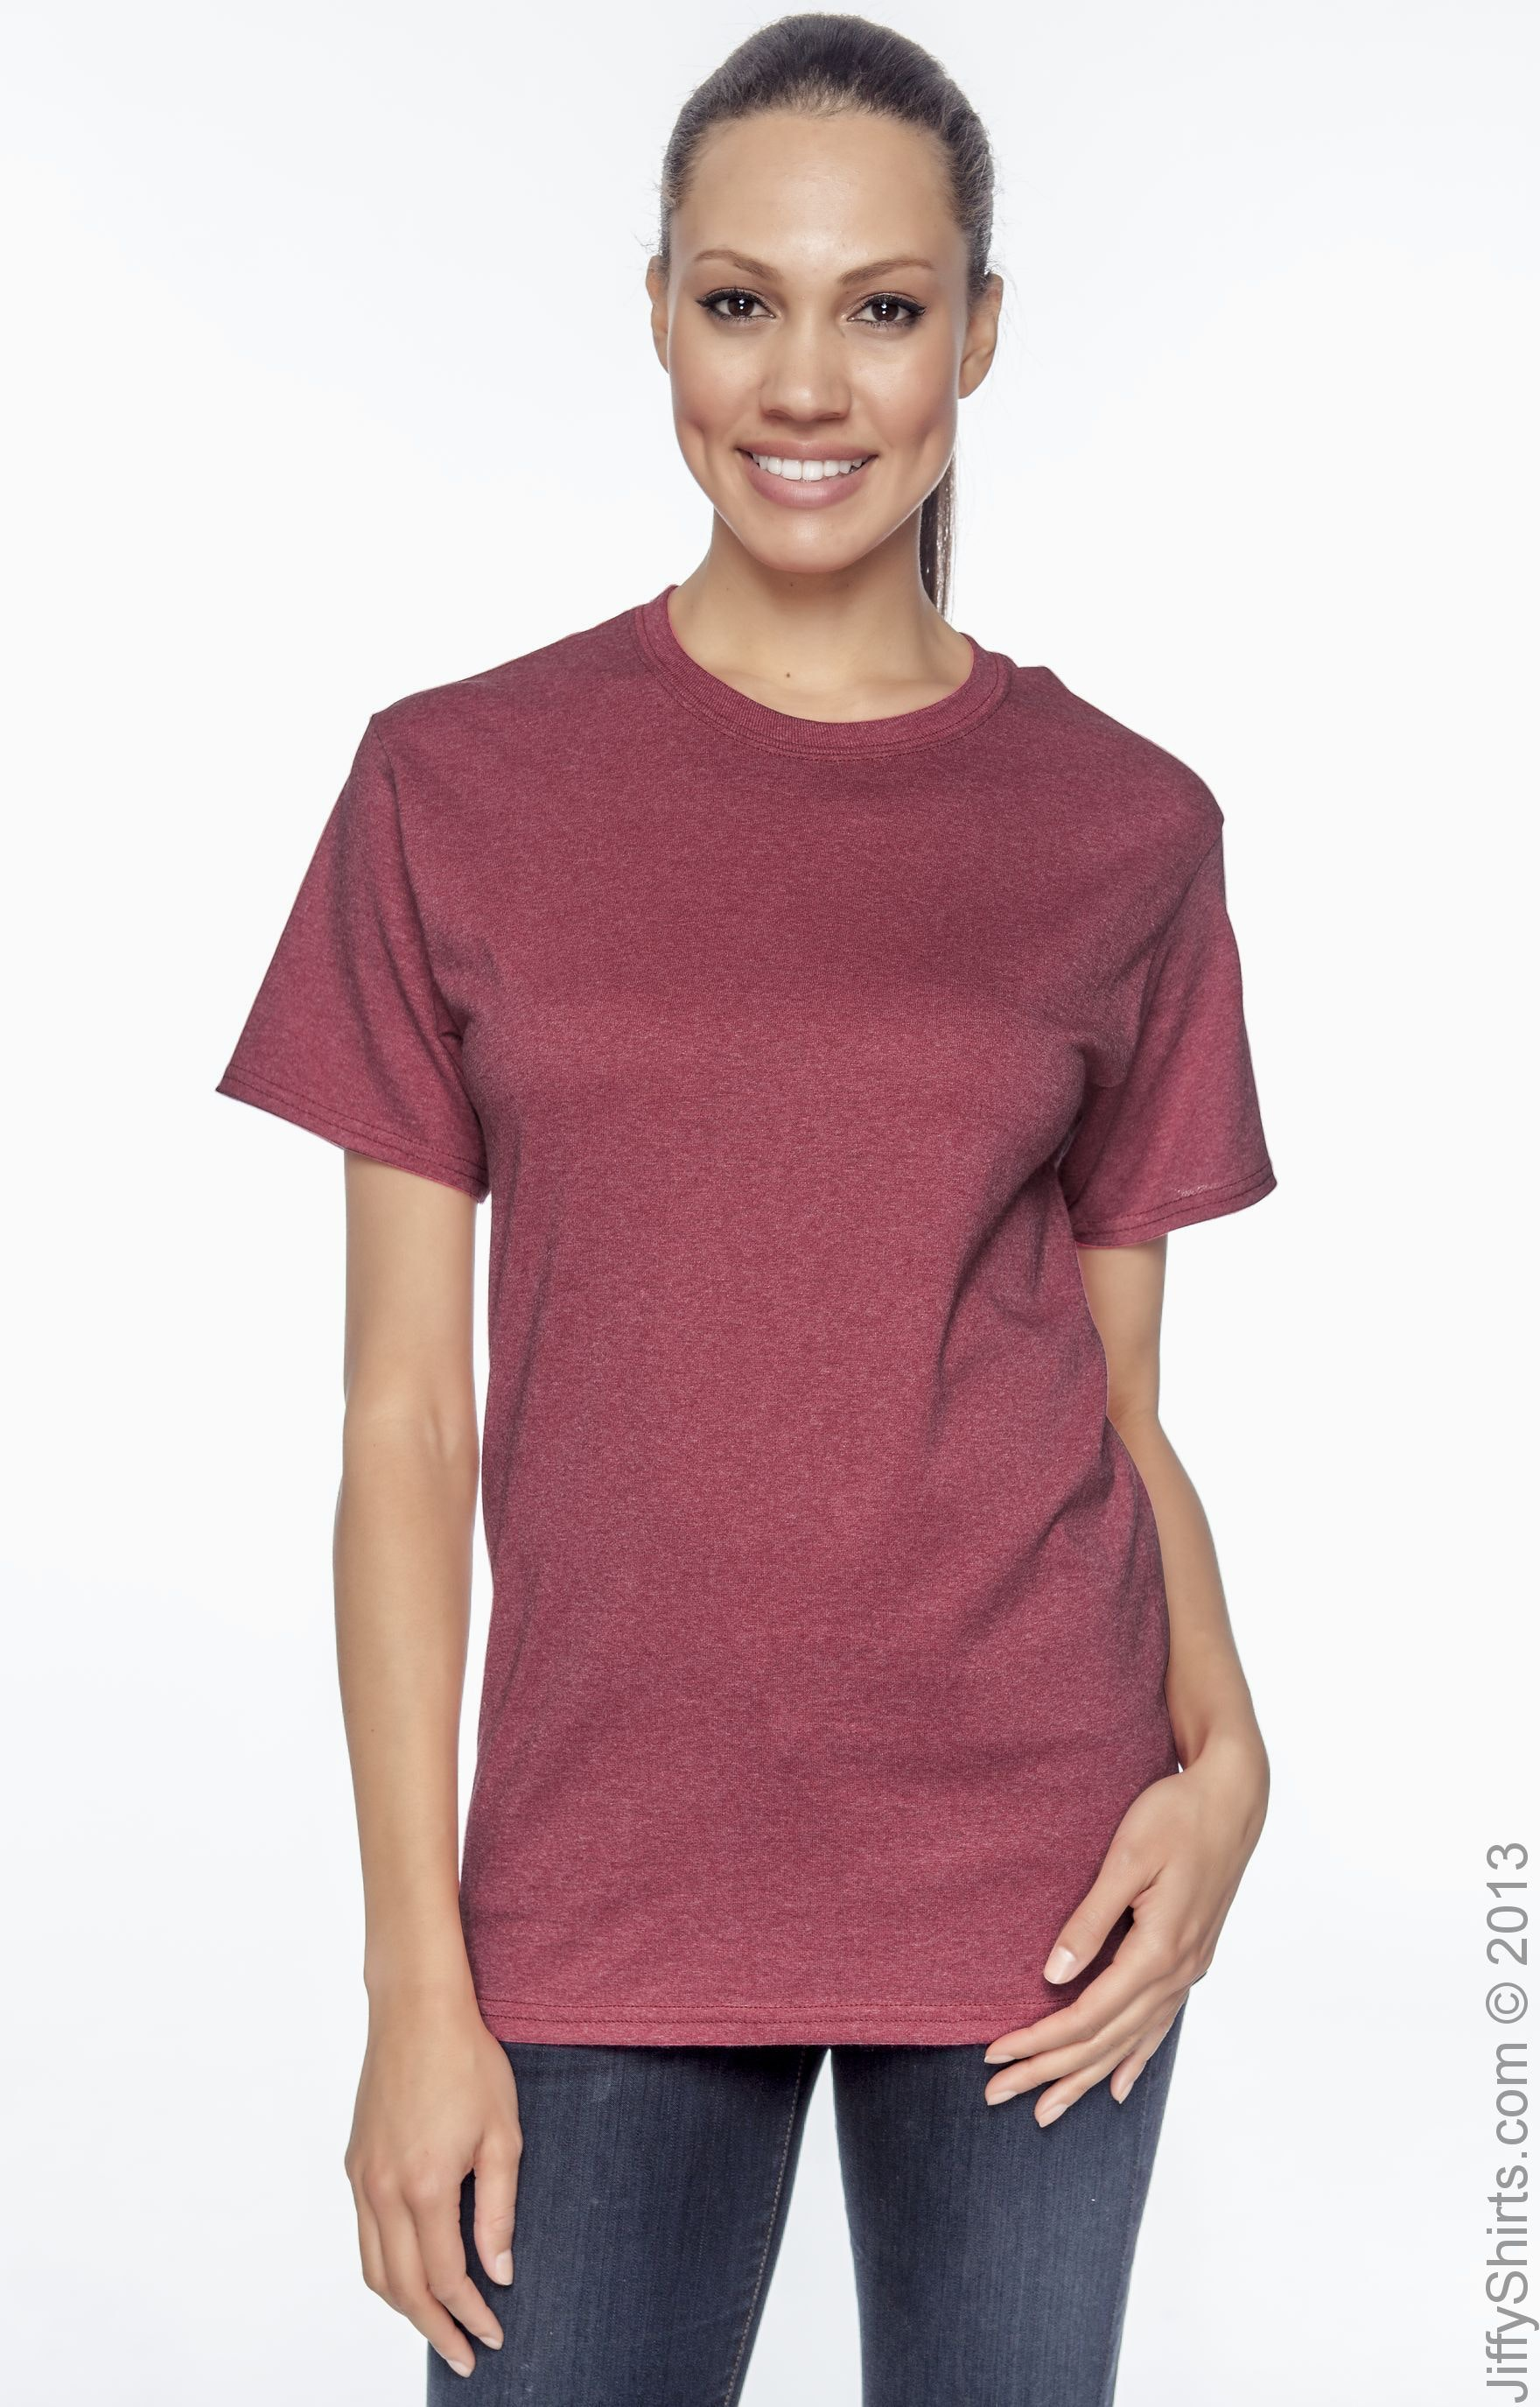 Hanes 5170 Heather Red